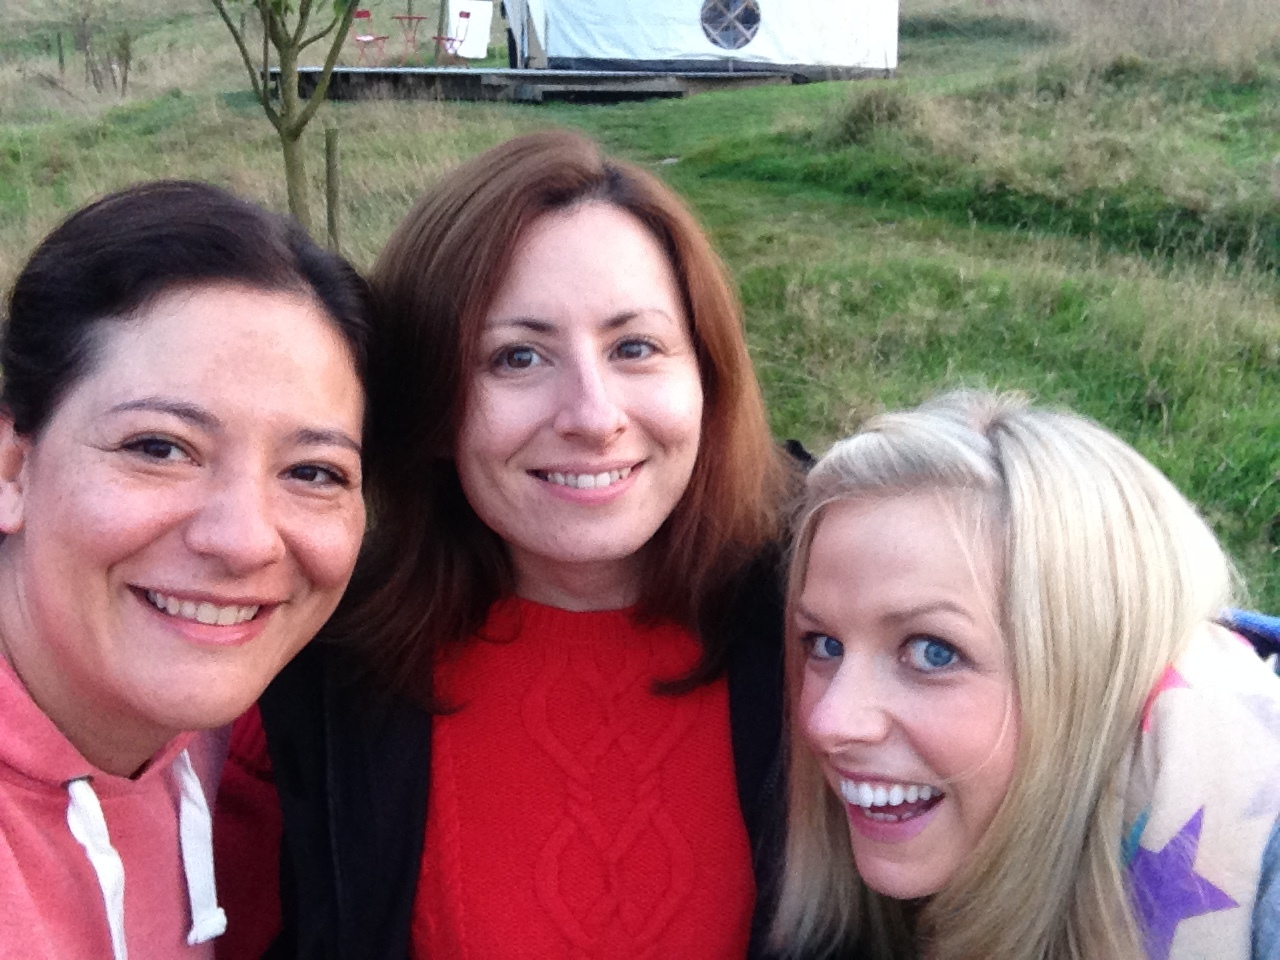 On my first yoga retreat in Cornwall, with Shine Yoga. These are my yurt buddies, who I didn't know before but who I shared sooooo many laughs with!